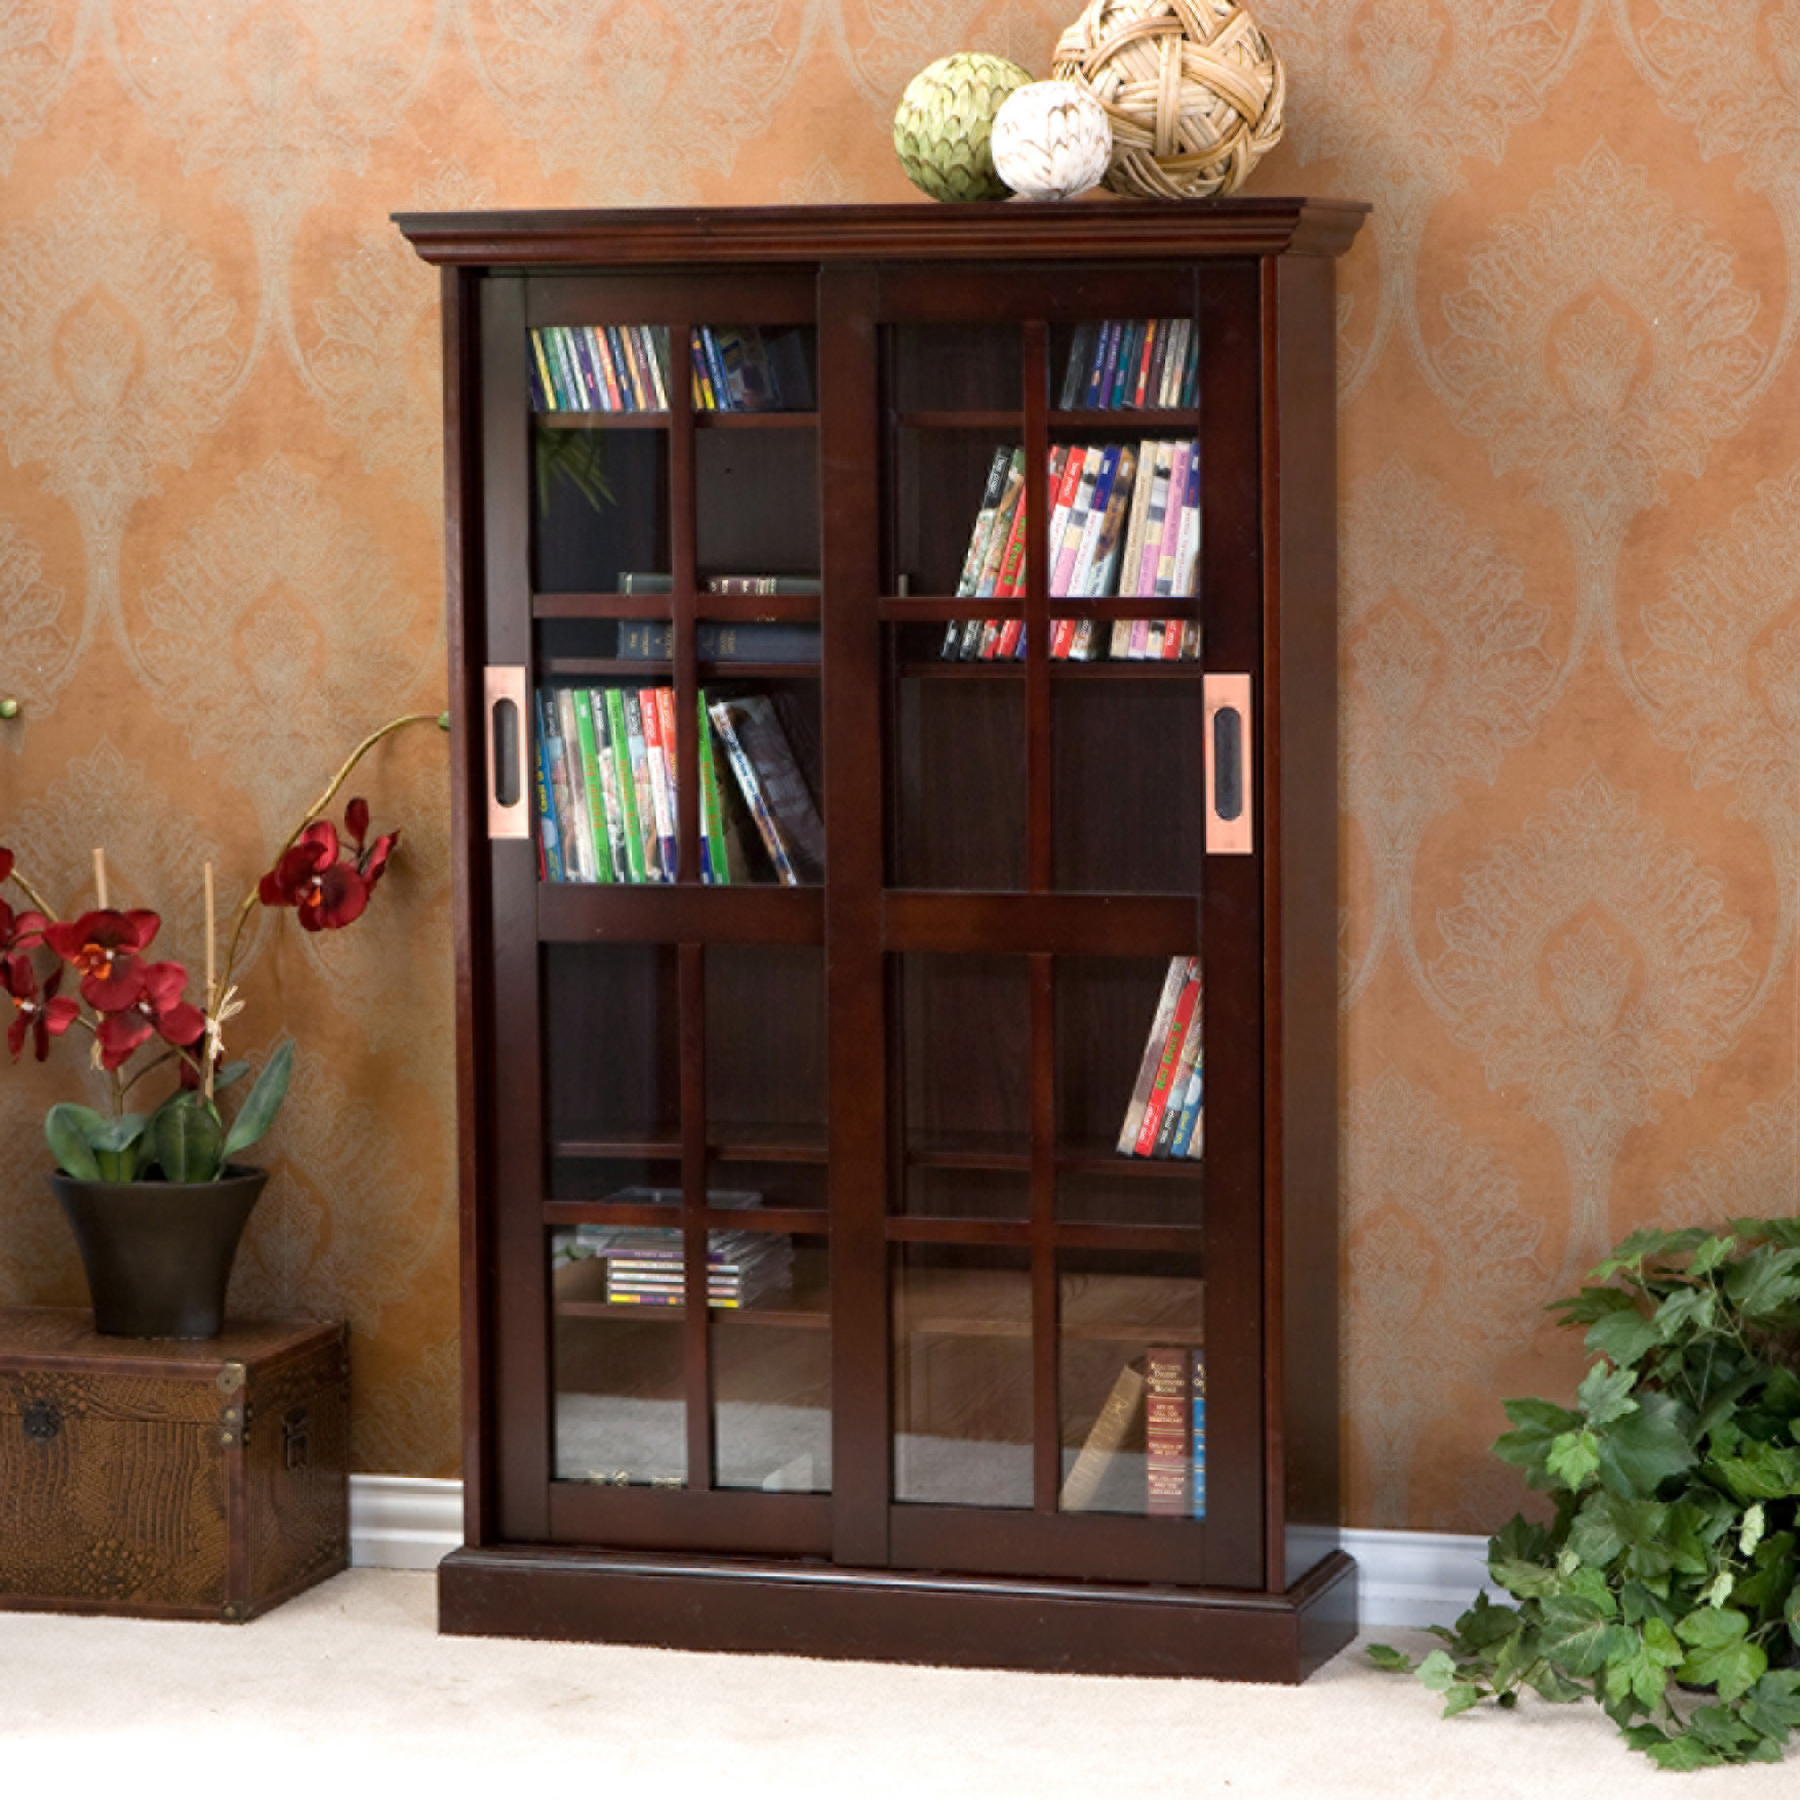 just door doors com features dark kitchens home affordable our arts guitar hinge u for cabinet impressing tracks cabinets utility with soft sliding size of furniture houzz wolverine close shape in diy designs sensational exquisite top modern costco kitchen bass full glass